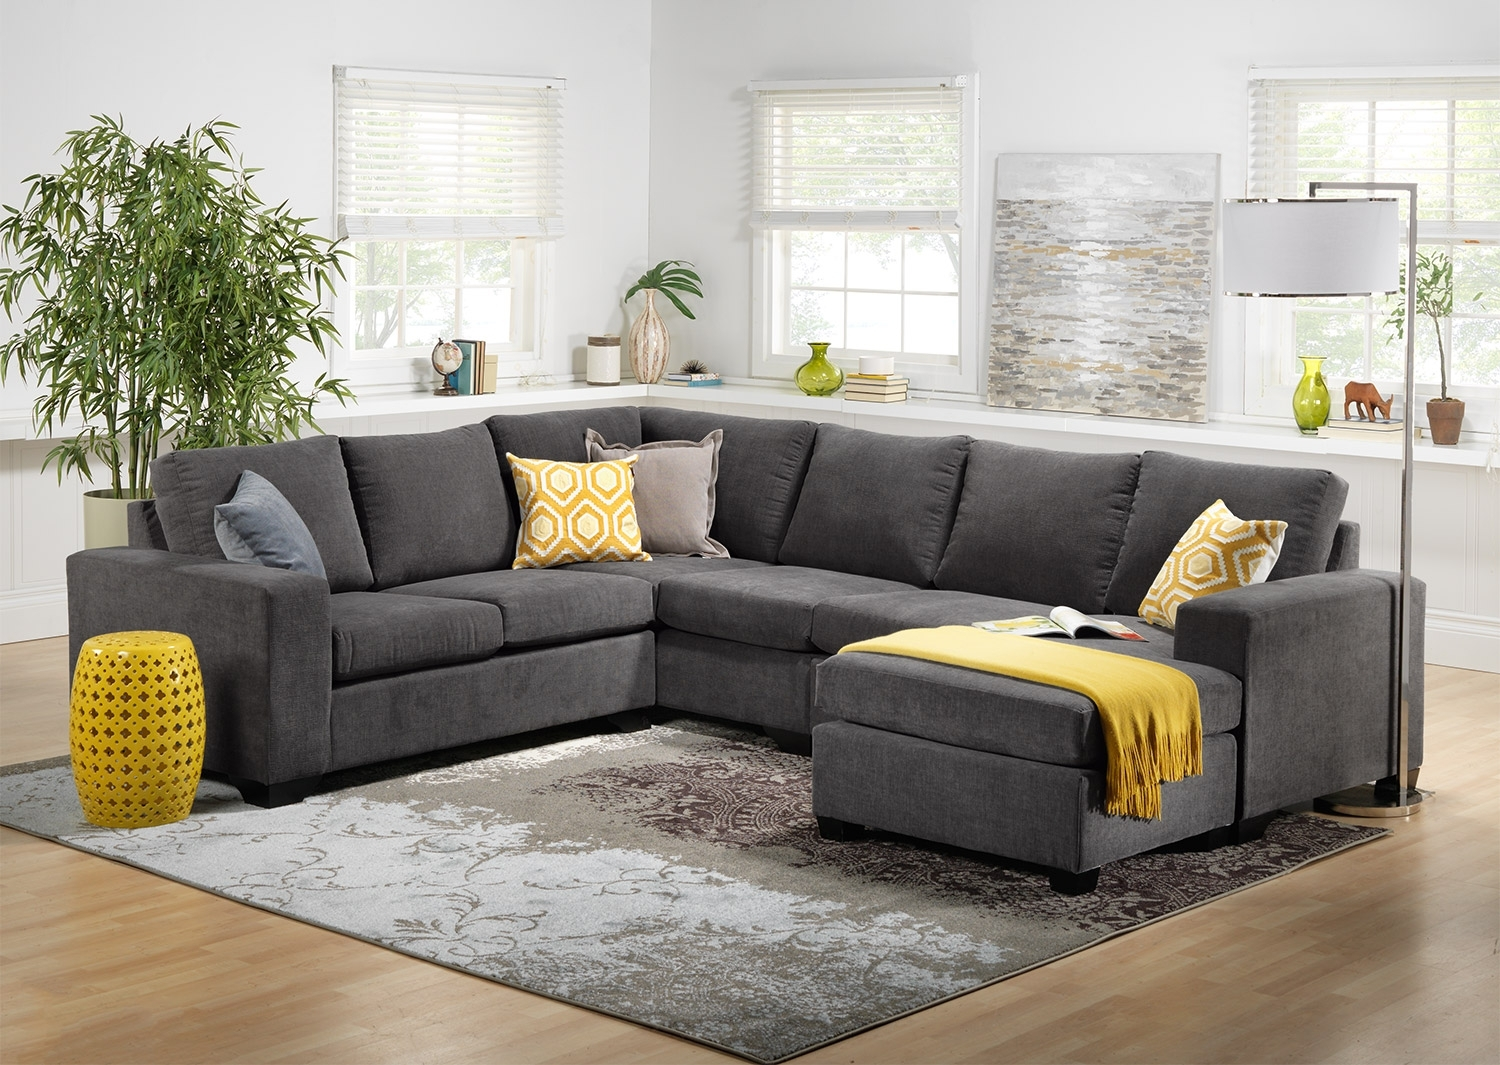 Contemporary Sectional Sofas Canada | Functionalities Intended For Sectional Sofas In Canada (Image 1 of 10)